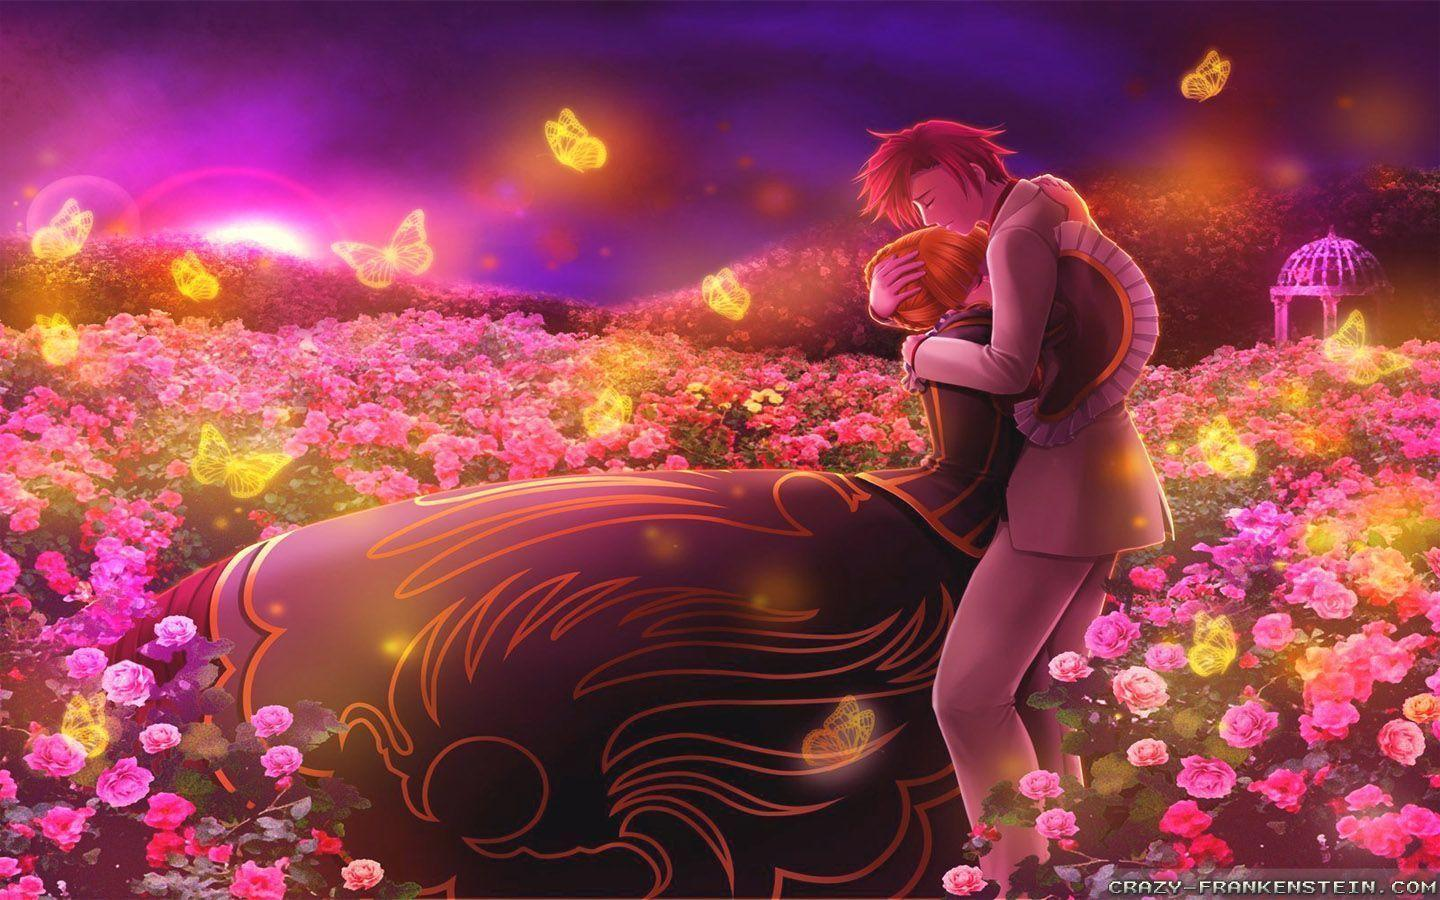 Beautiful Love Image For Him Pictures 5 HD Wallpaperscom